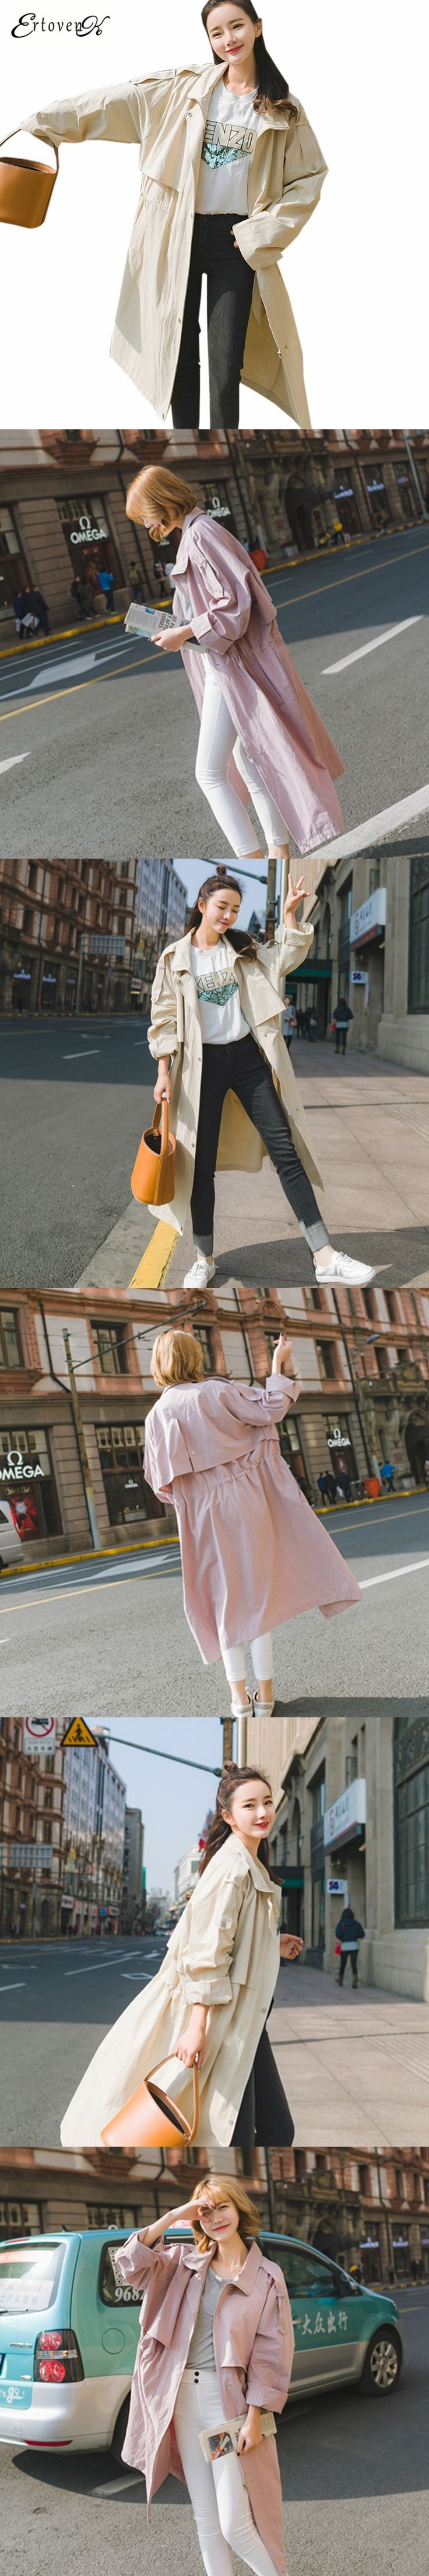 2017 Spring Autumn New Women Windbreaker Casual Clothing Large-size Coat Long-sleeved Temperament Outerwear abrigos mujerONE856